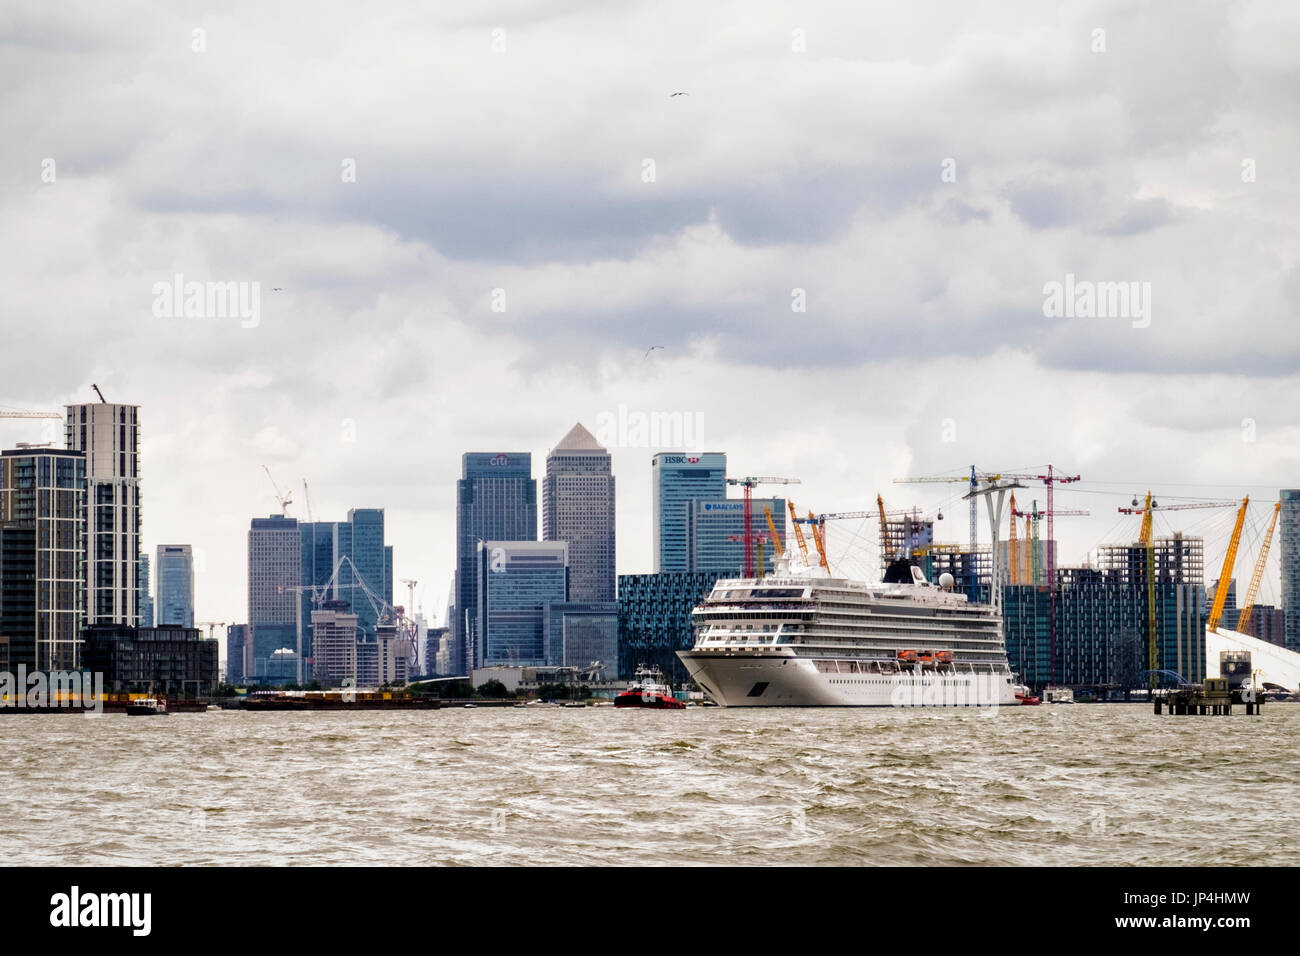 UK,London,MV Viking Sea cruise ship passes Canary Wharf banking and Financial centre as it leaves the city. Cruise liner leaves London. River Thames - Stock Image